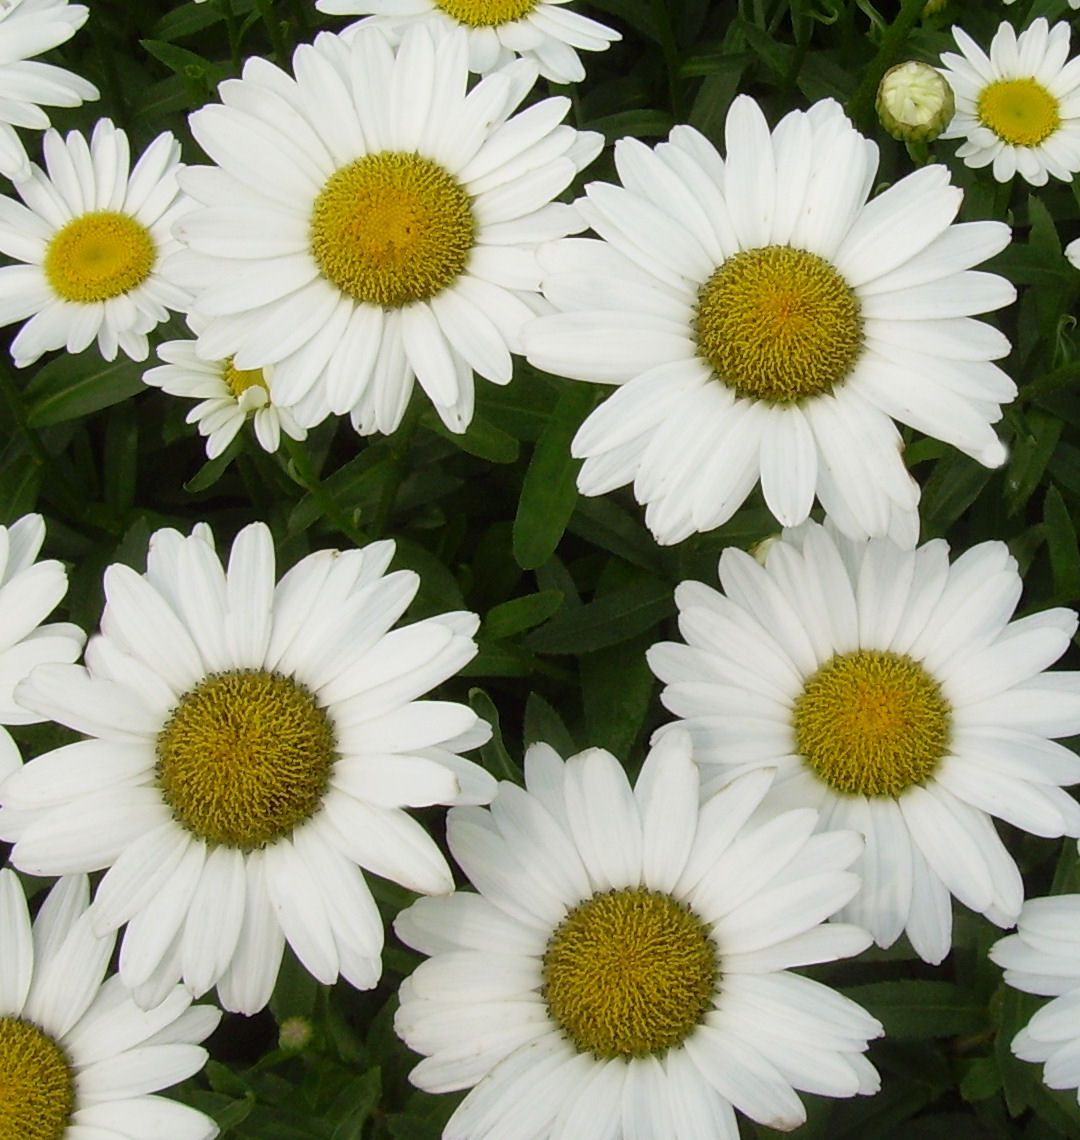 Summer Flowering Perennial With Large Daisy Like White Flowers With